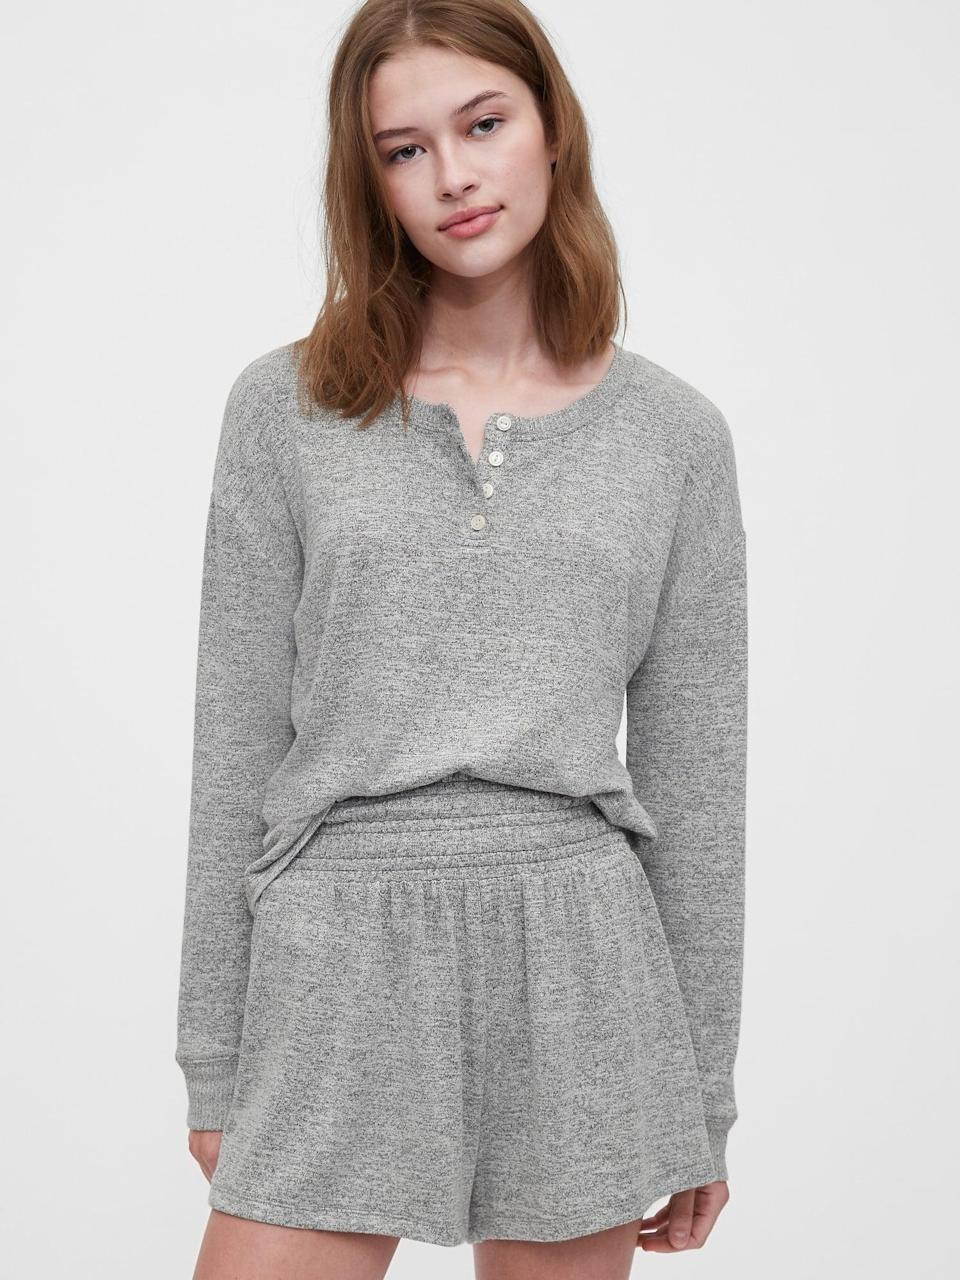 <p>Slightly cropped, this <span>Gap Softspun Henley Top</span> ($32, originally $45) is perfect for a relaxed look and if you have a shorter torso. Where to sleep or tucked into your favorite high-waisted jeans!</p>